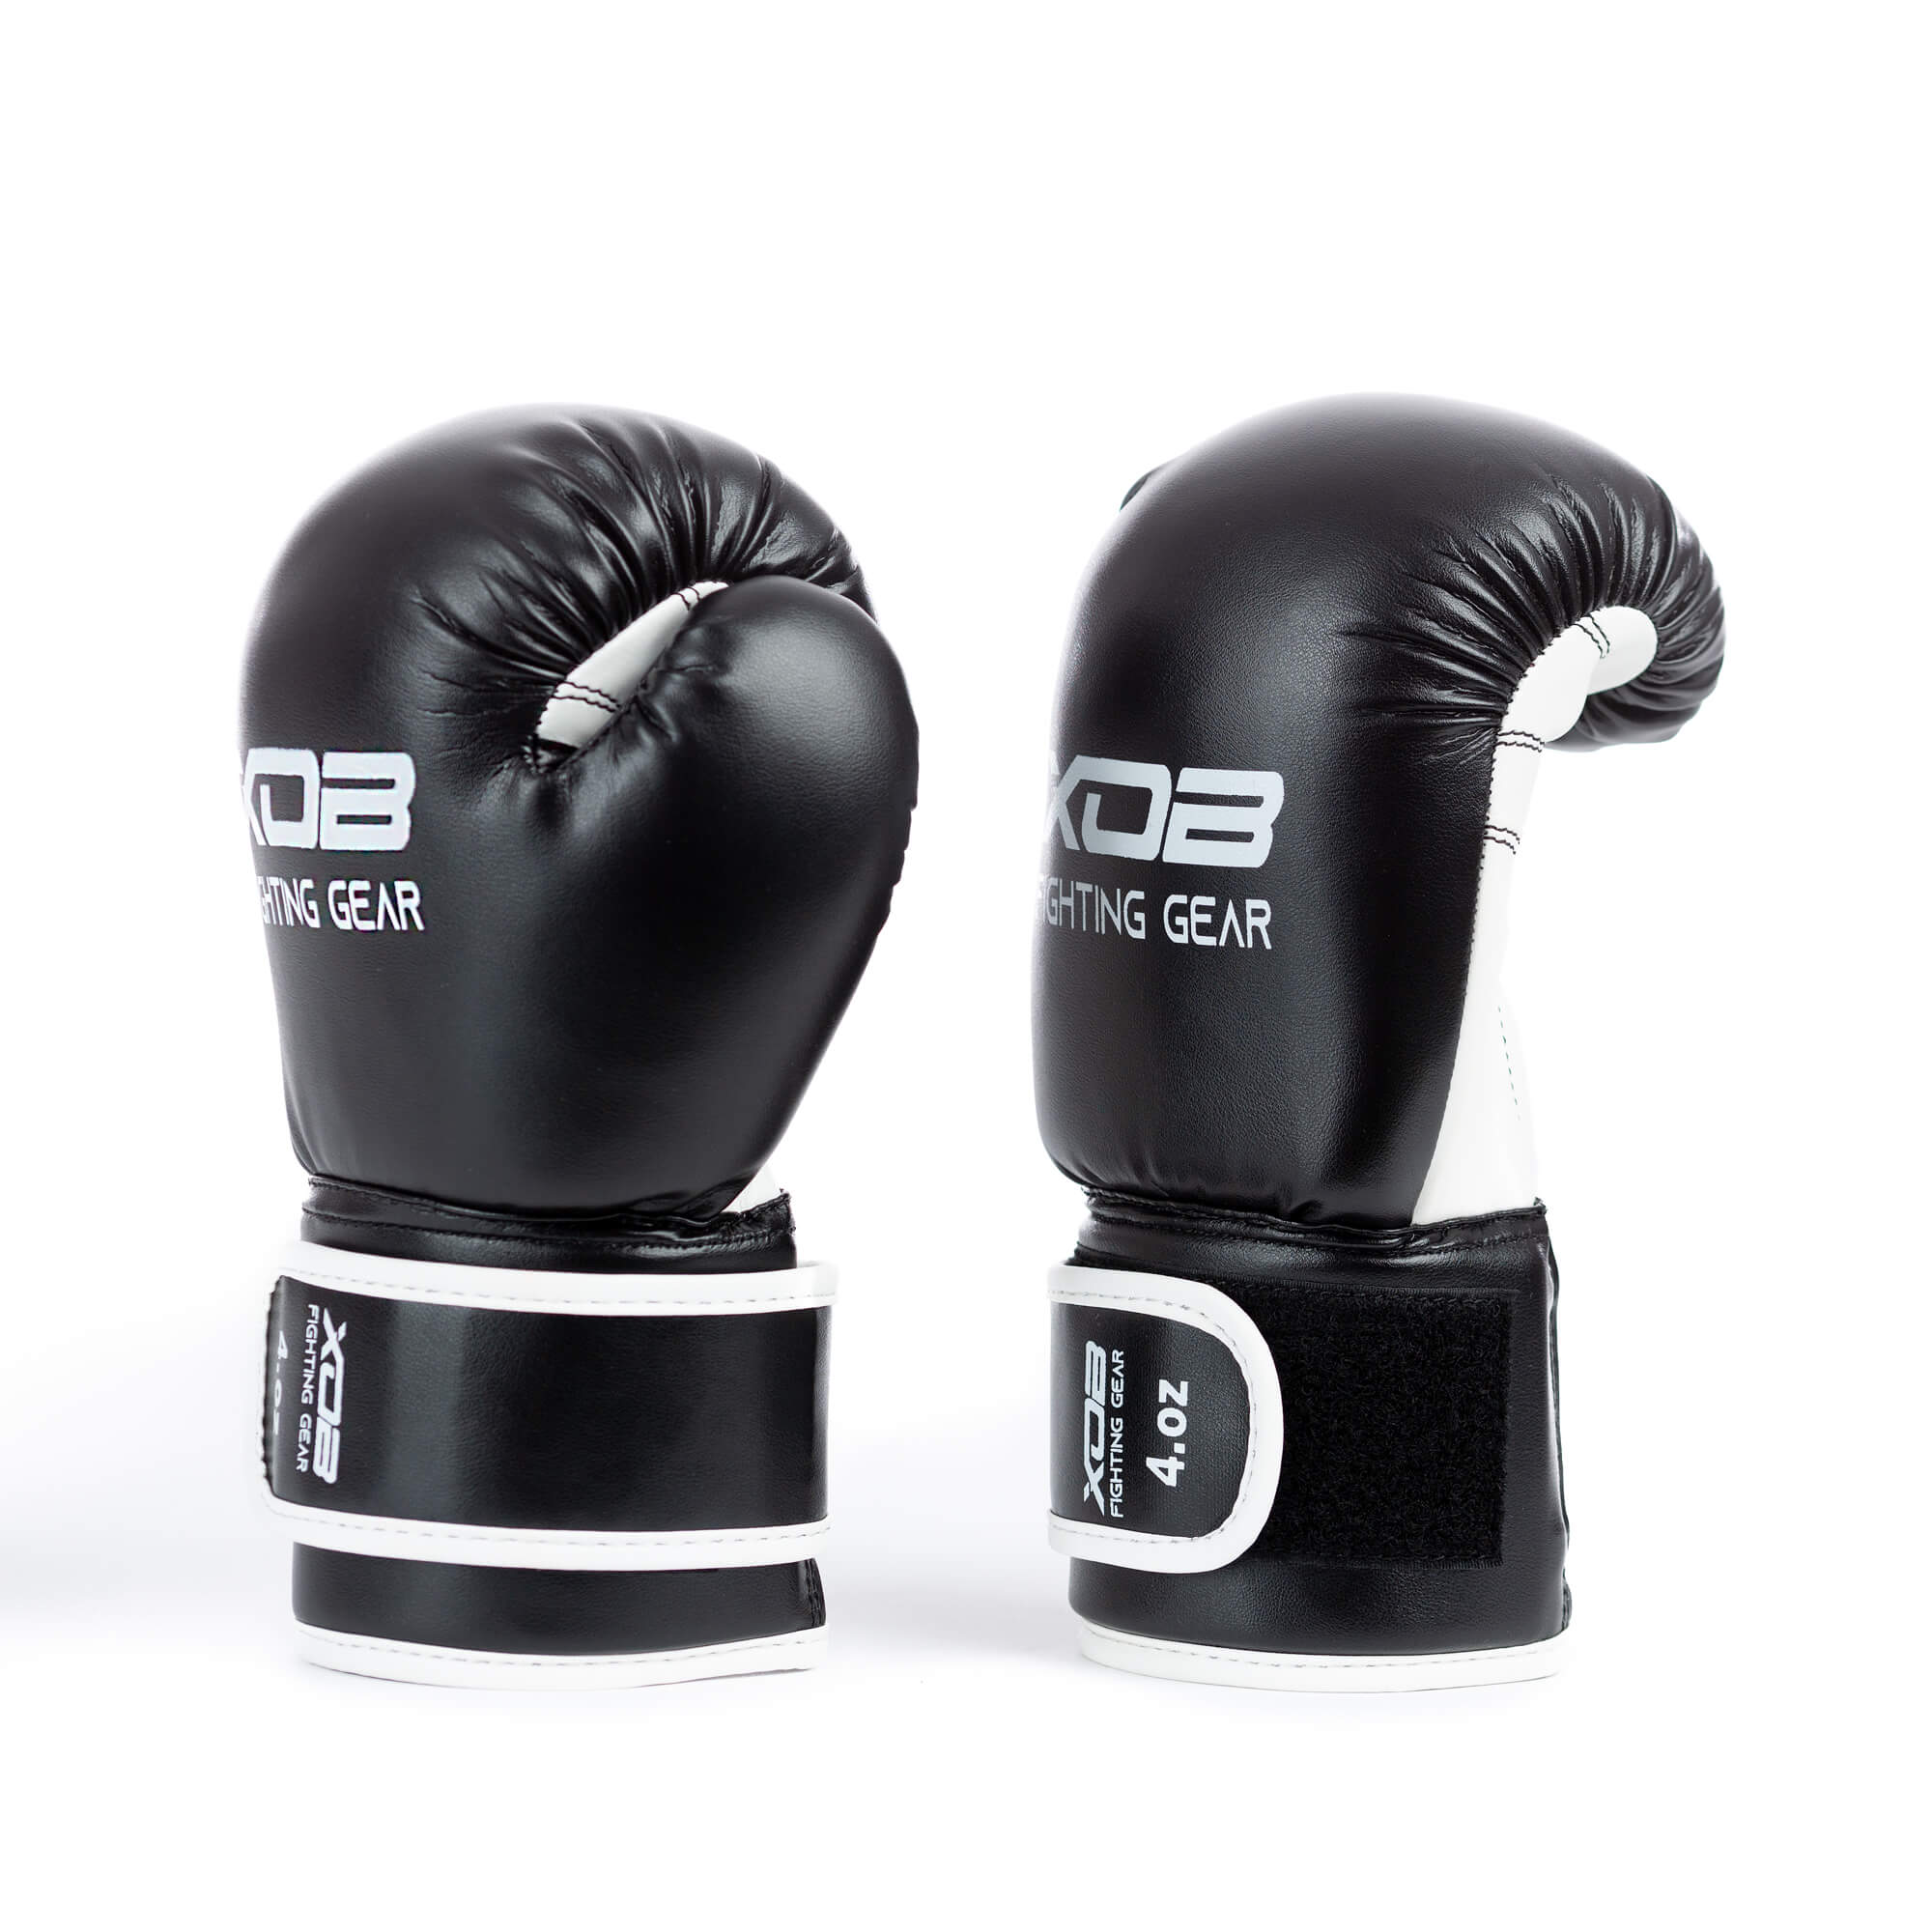 XOB Kidz Velcro Boxing Gloves - Black & White